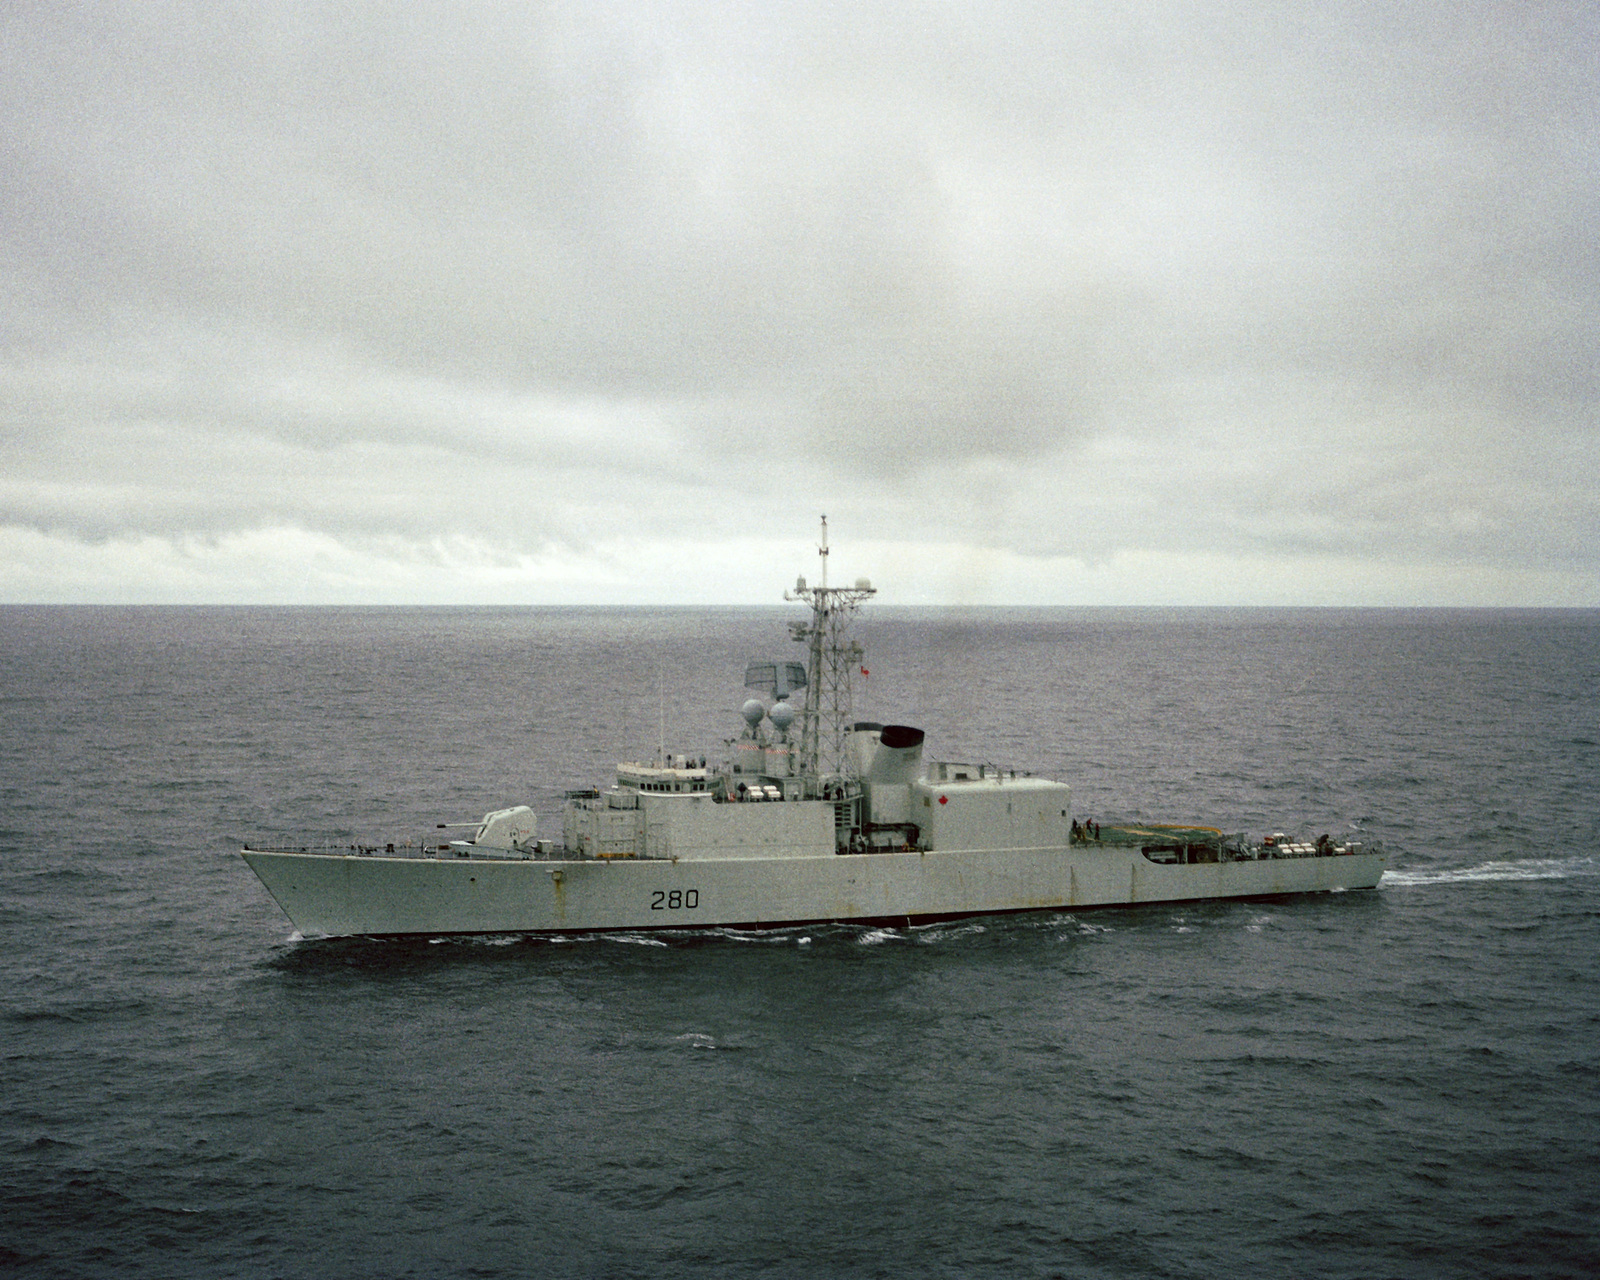 A port bow view of the Canadian destroyer HMCS IROQUOIS (280) underway